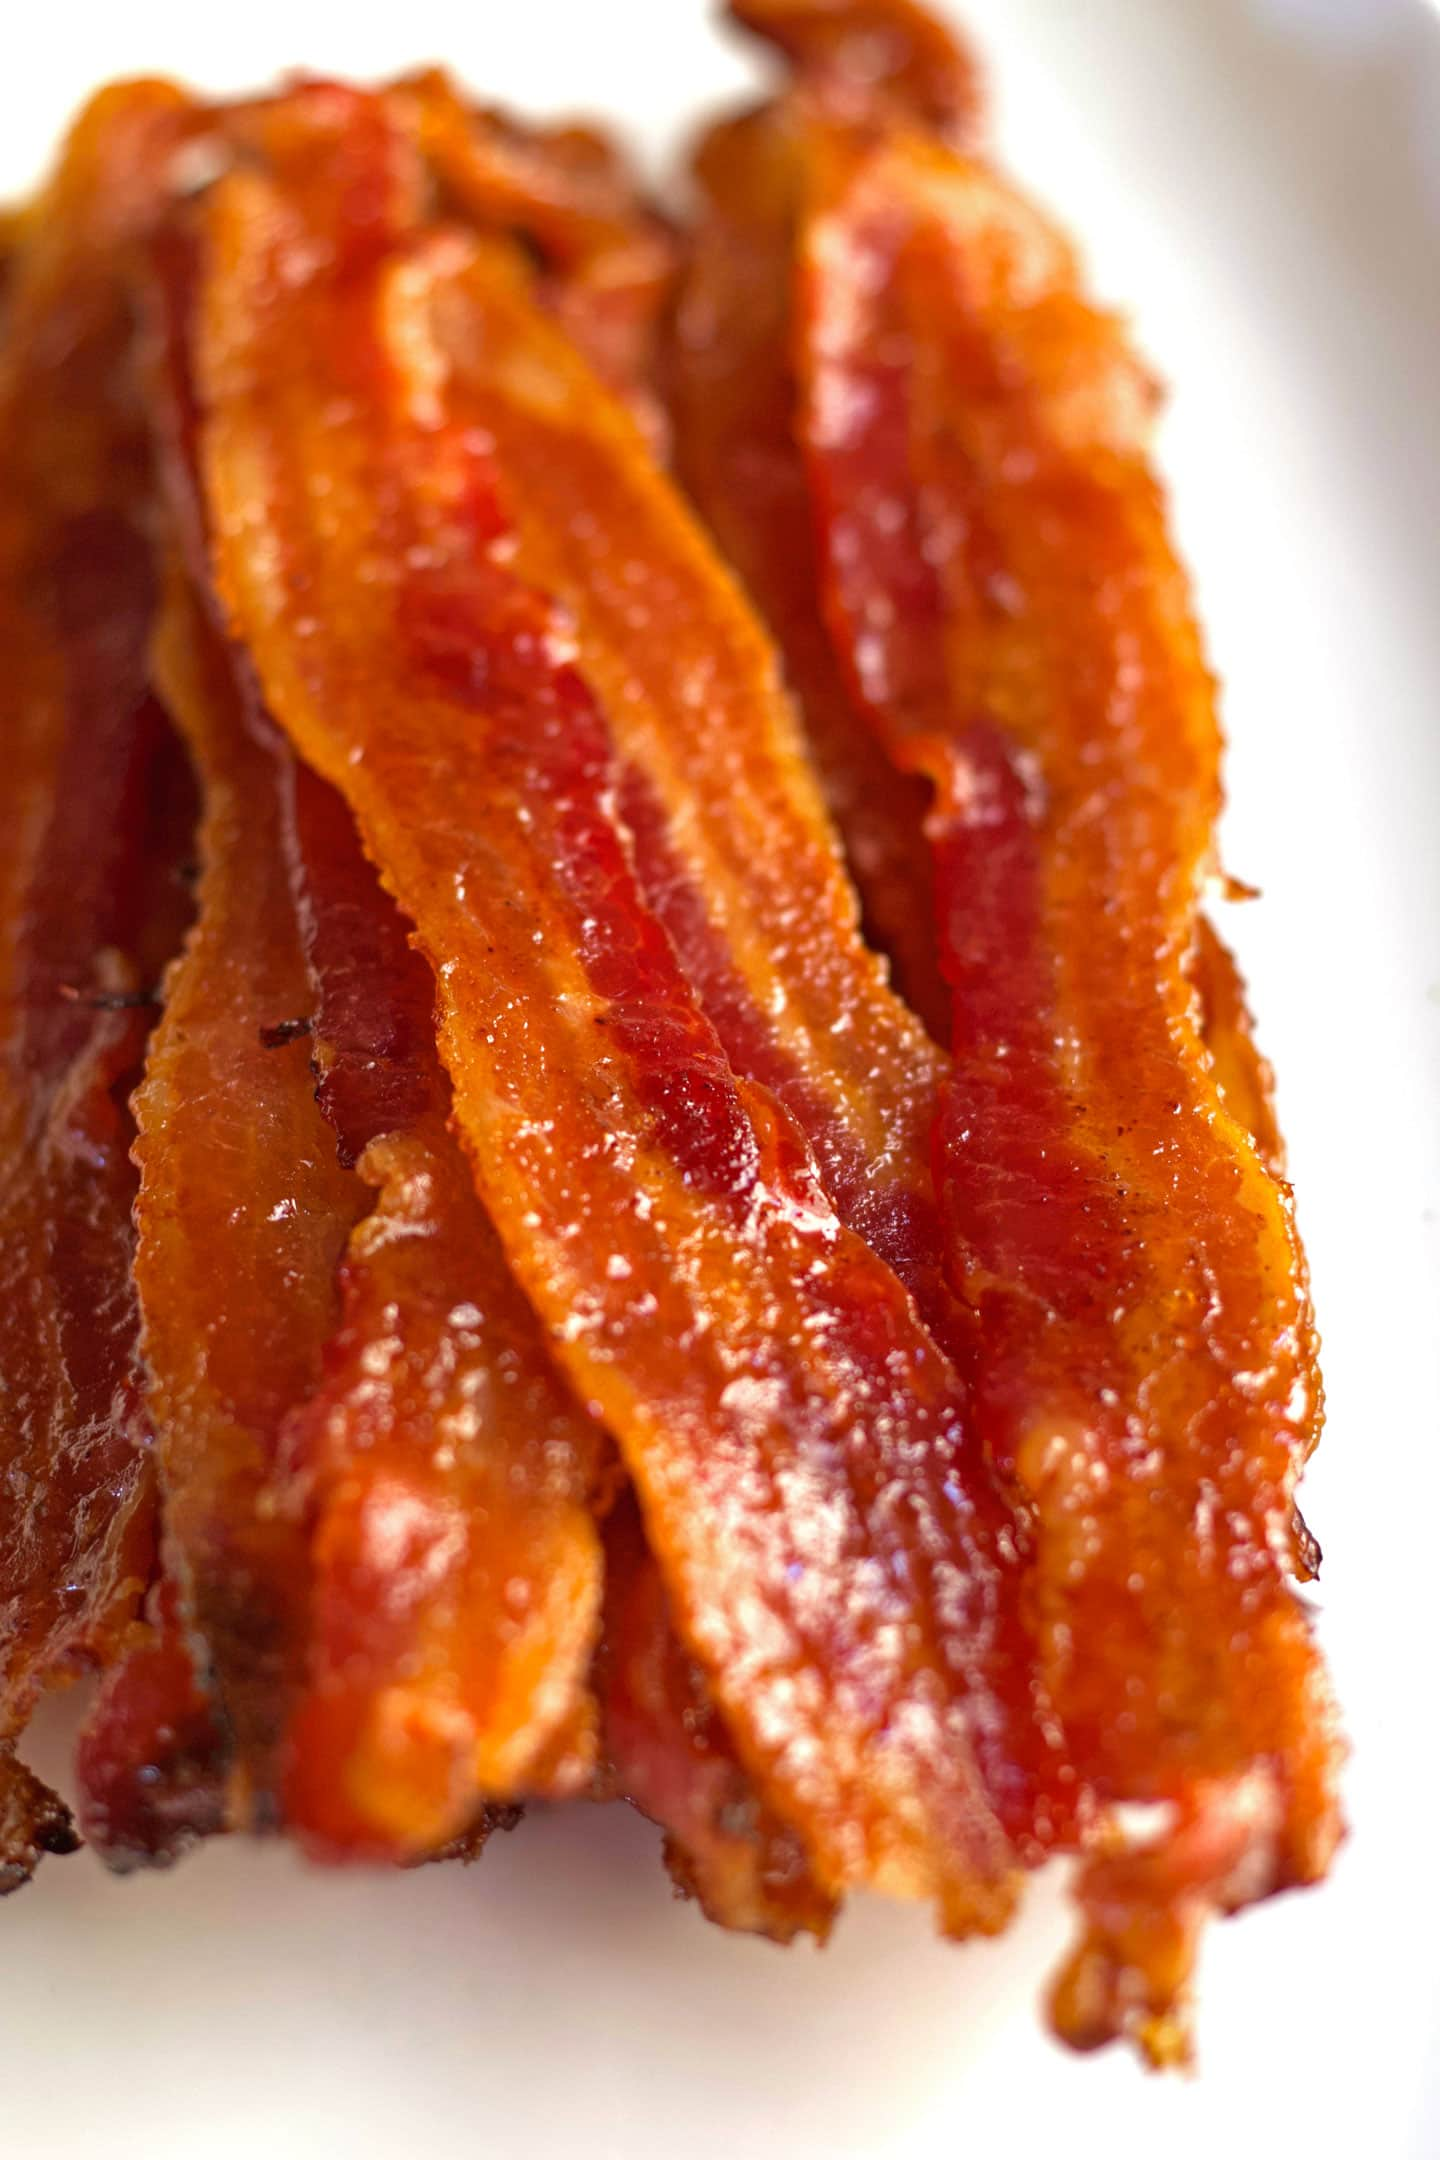 Stack of oven-baked candied bacon.